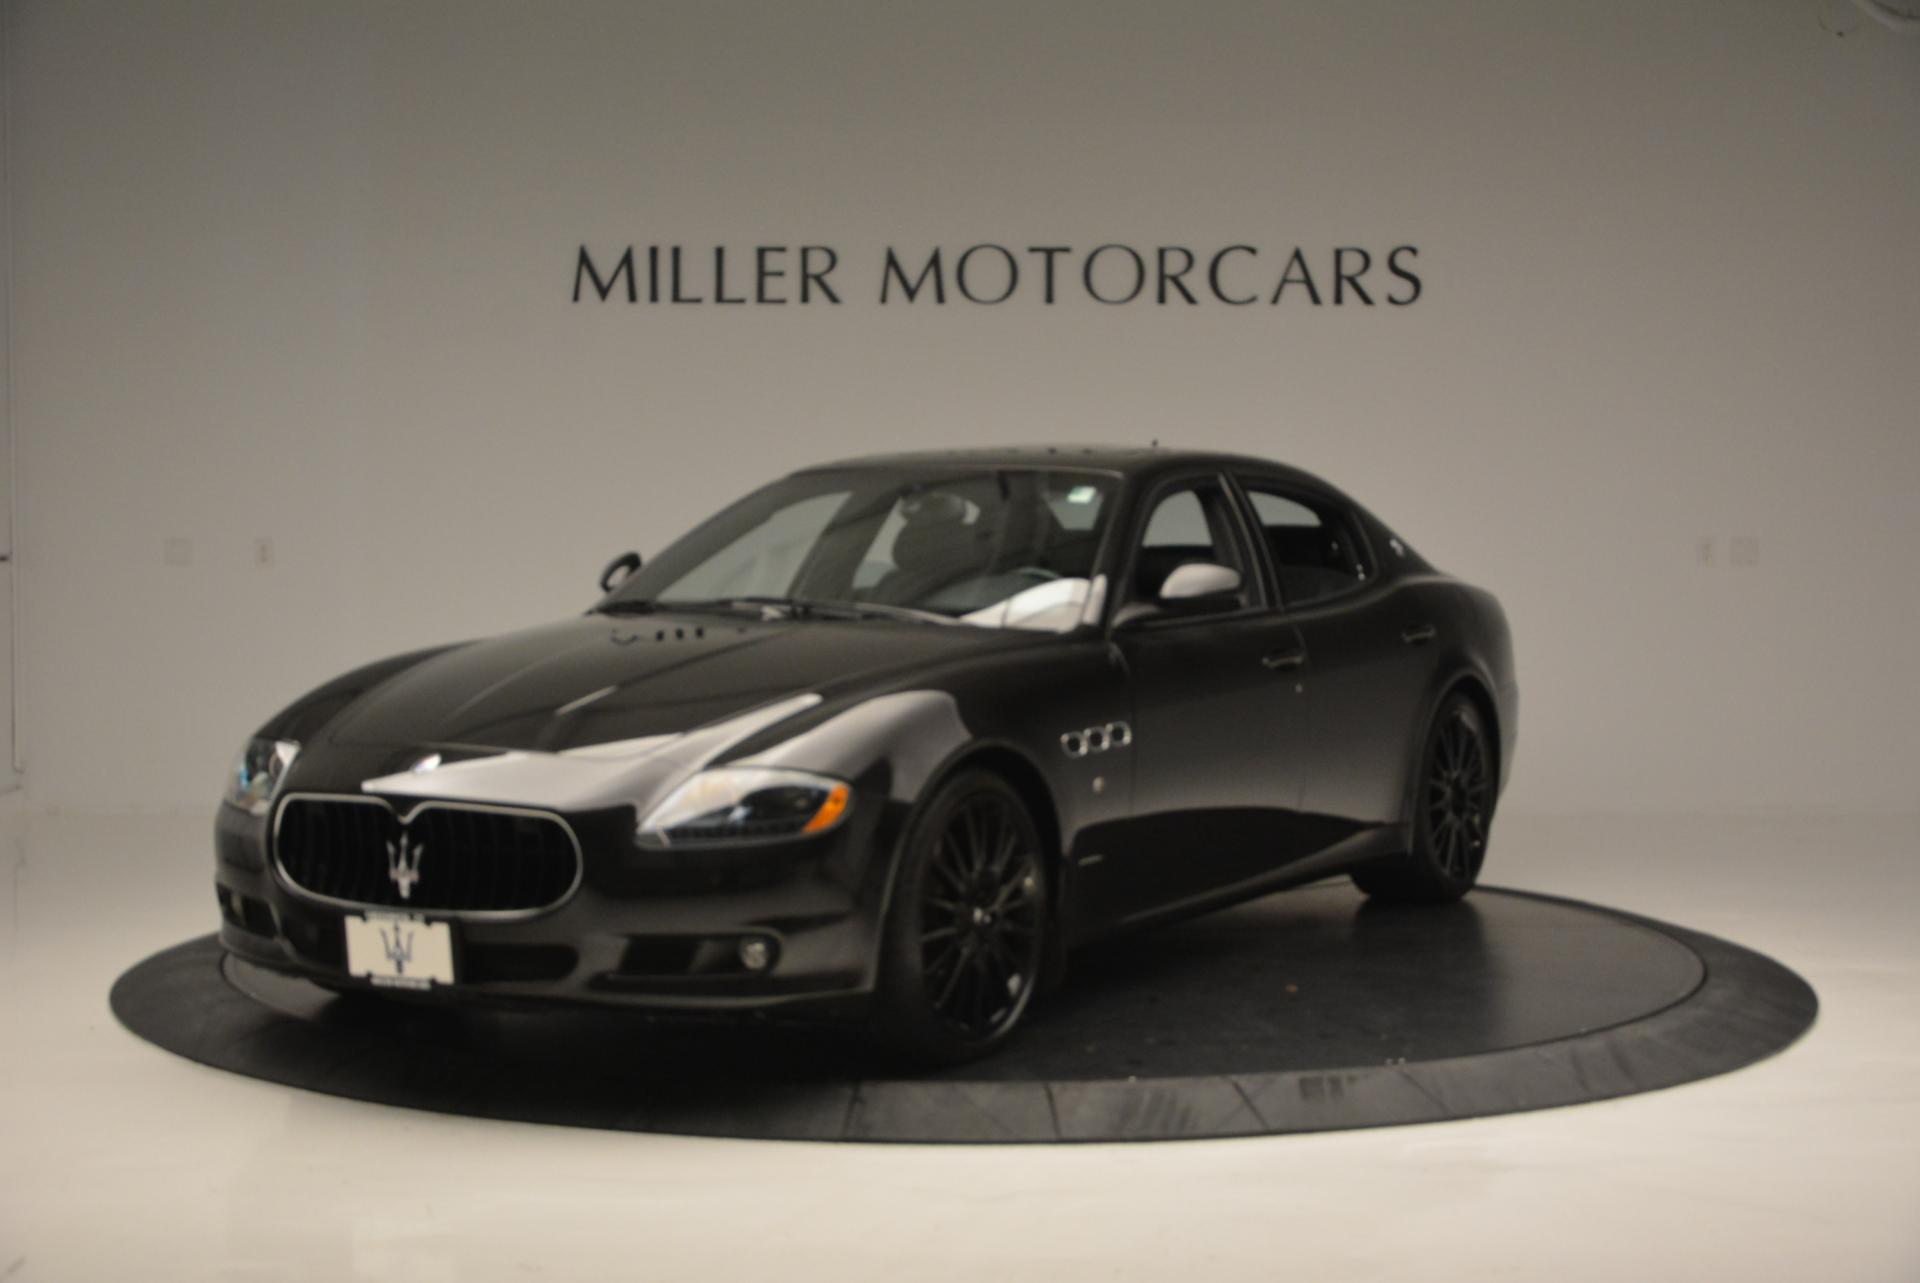 Used 2011 Maserati Quattroporte Sport GT S for sale Sold at Pagani of Greenwich in Greenwich CT 06830 1